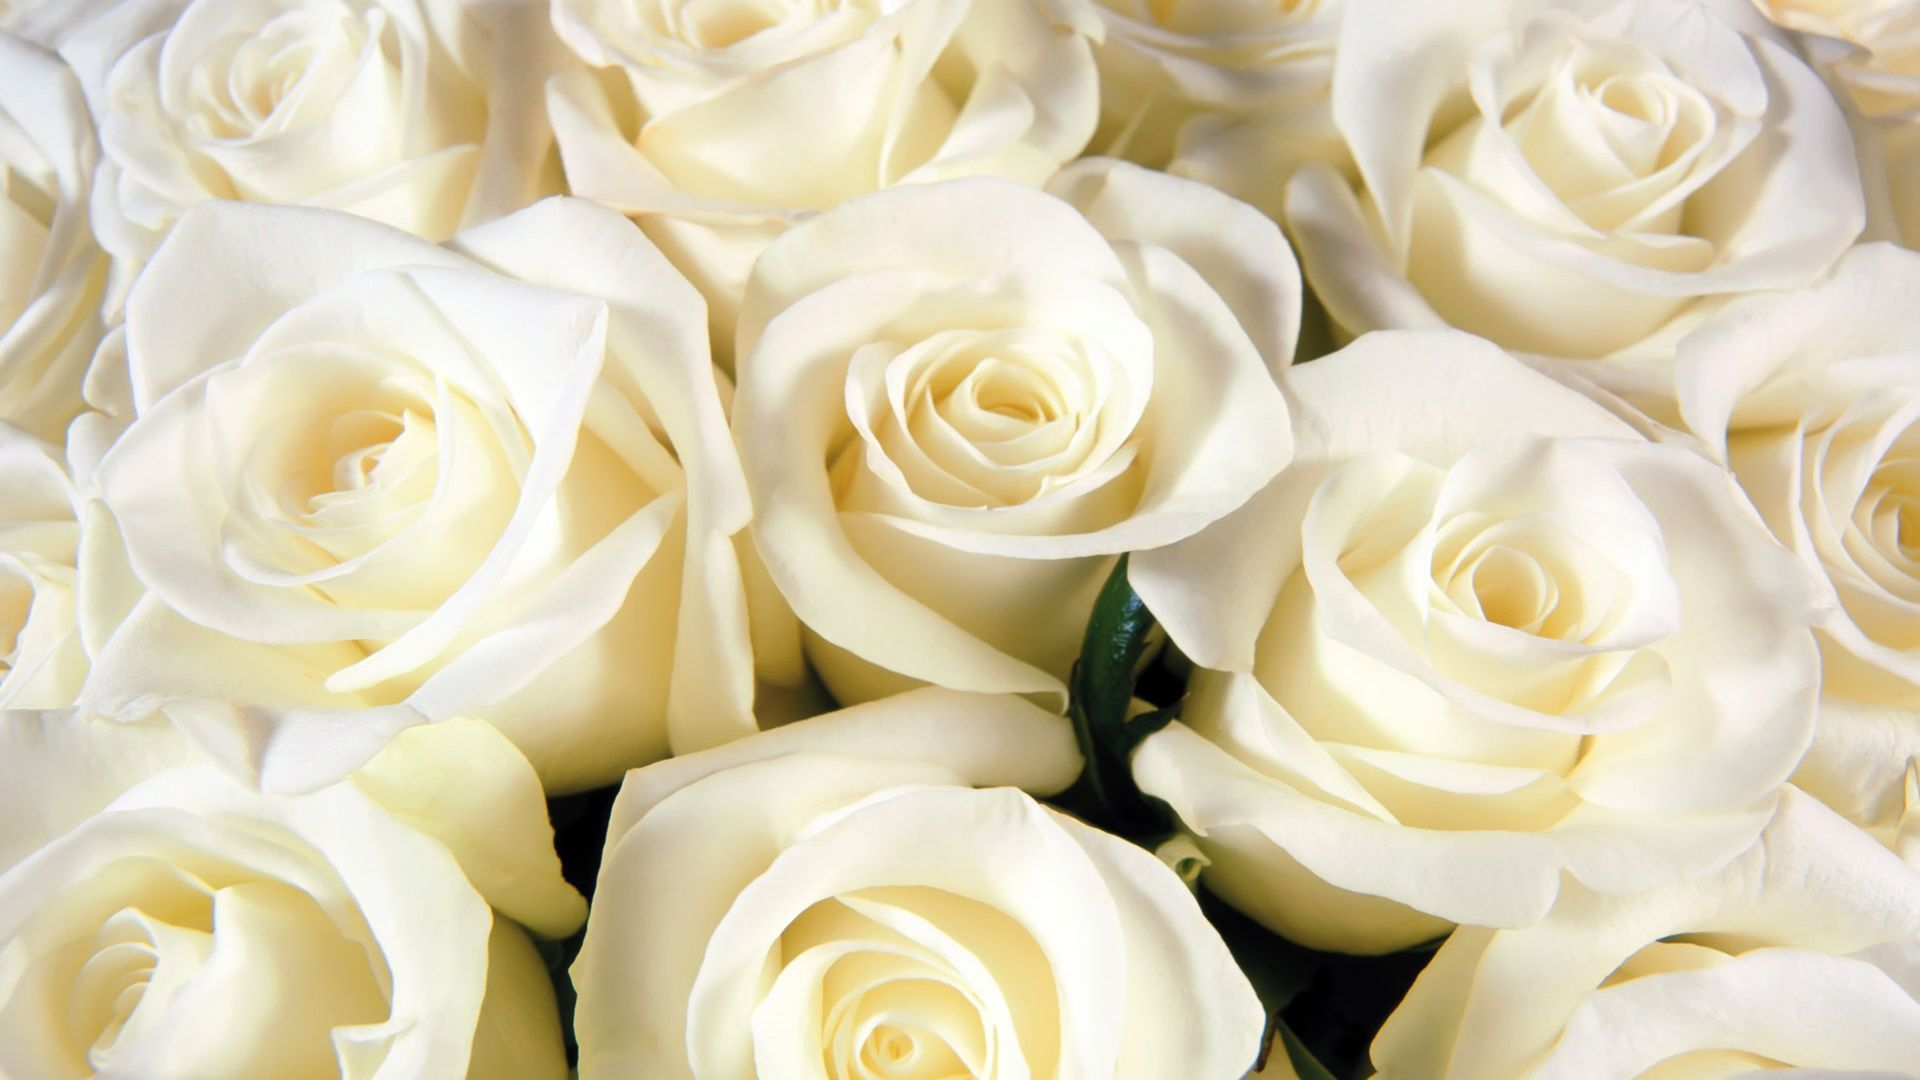 white rose wallpaper tumblr 2018 images pictures red rose